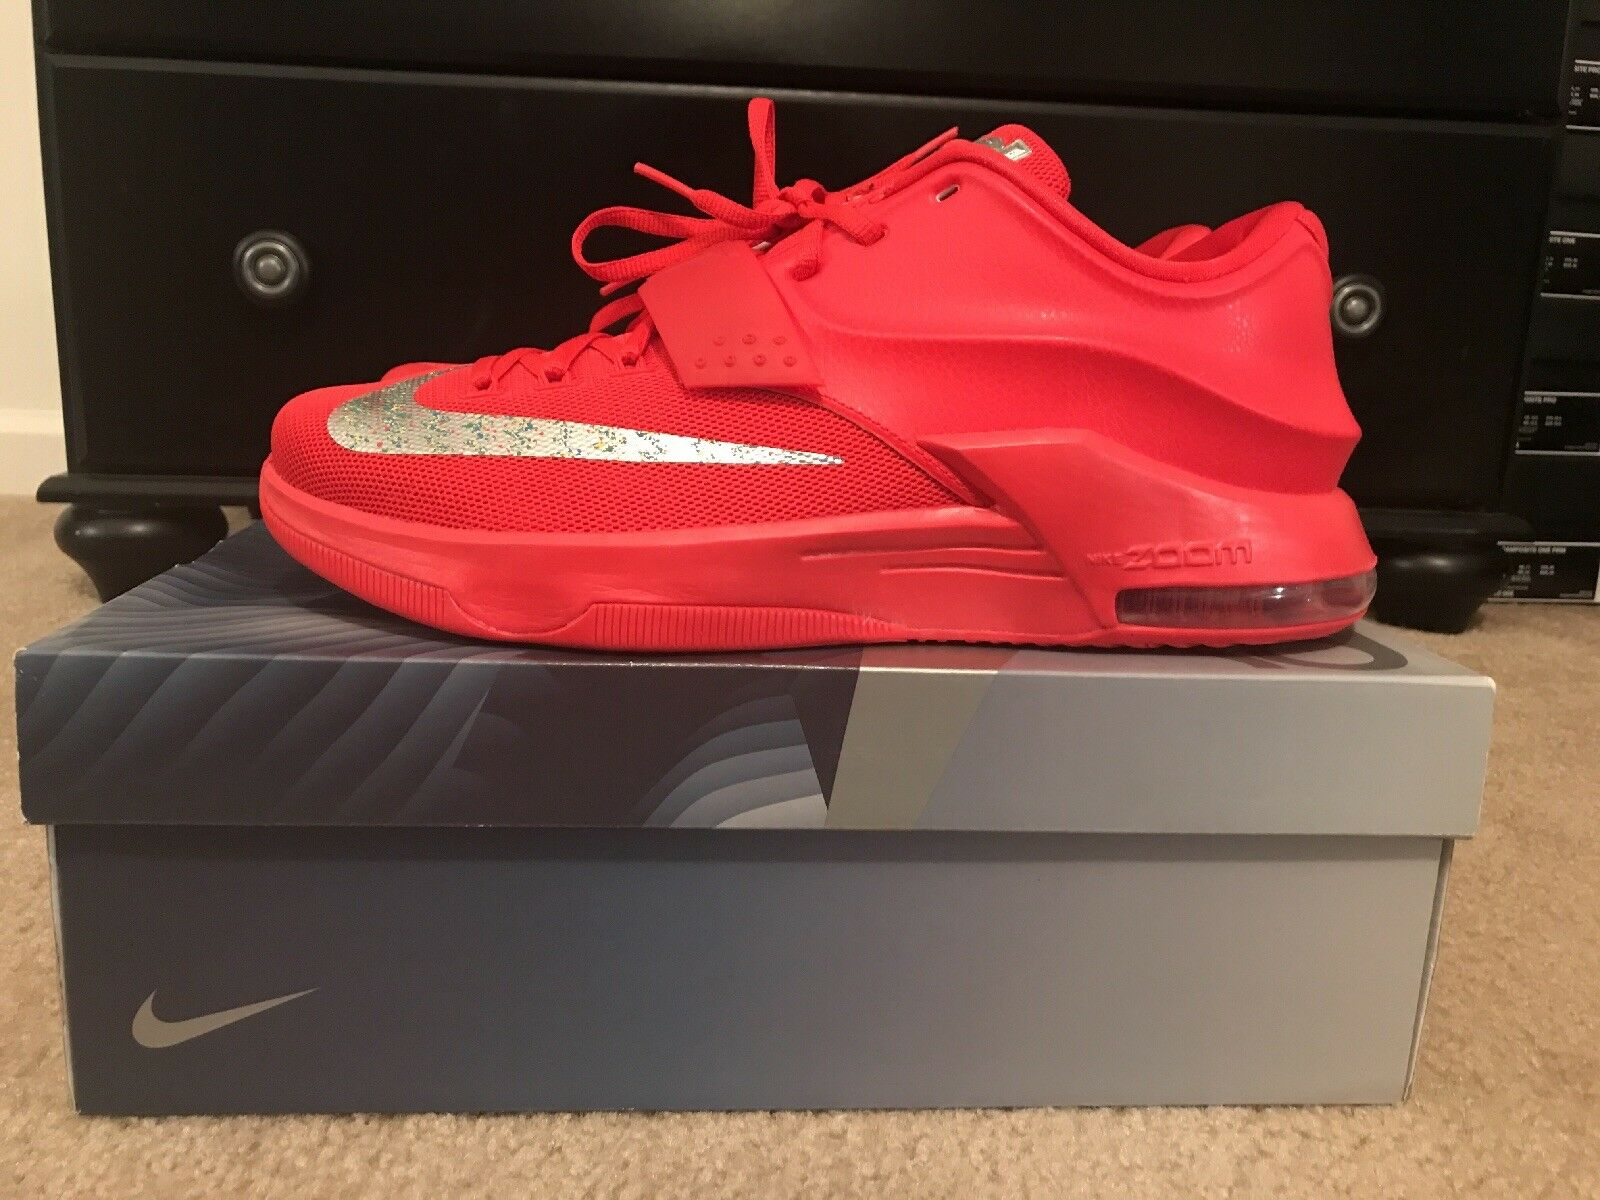 Nike KD VII 7  Global Game   Action Red Silver Grey SZ 11.5 (653996-660)